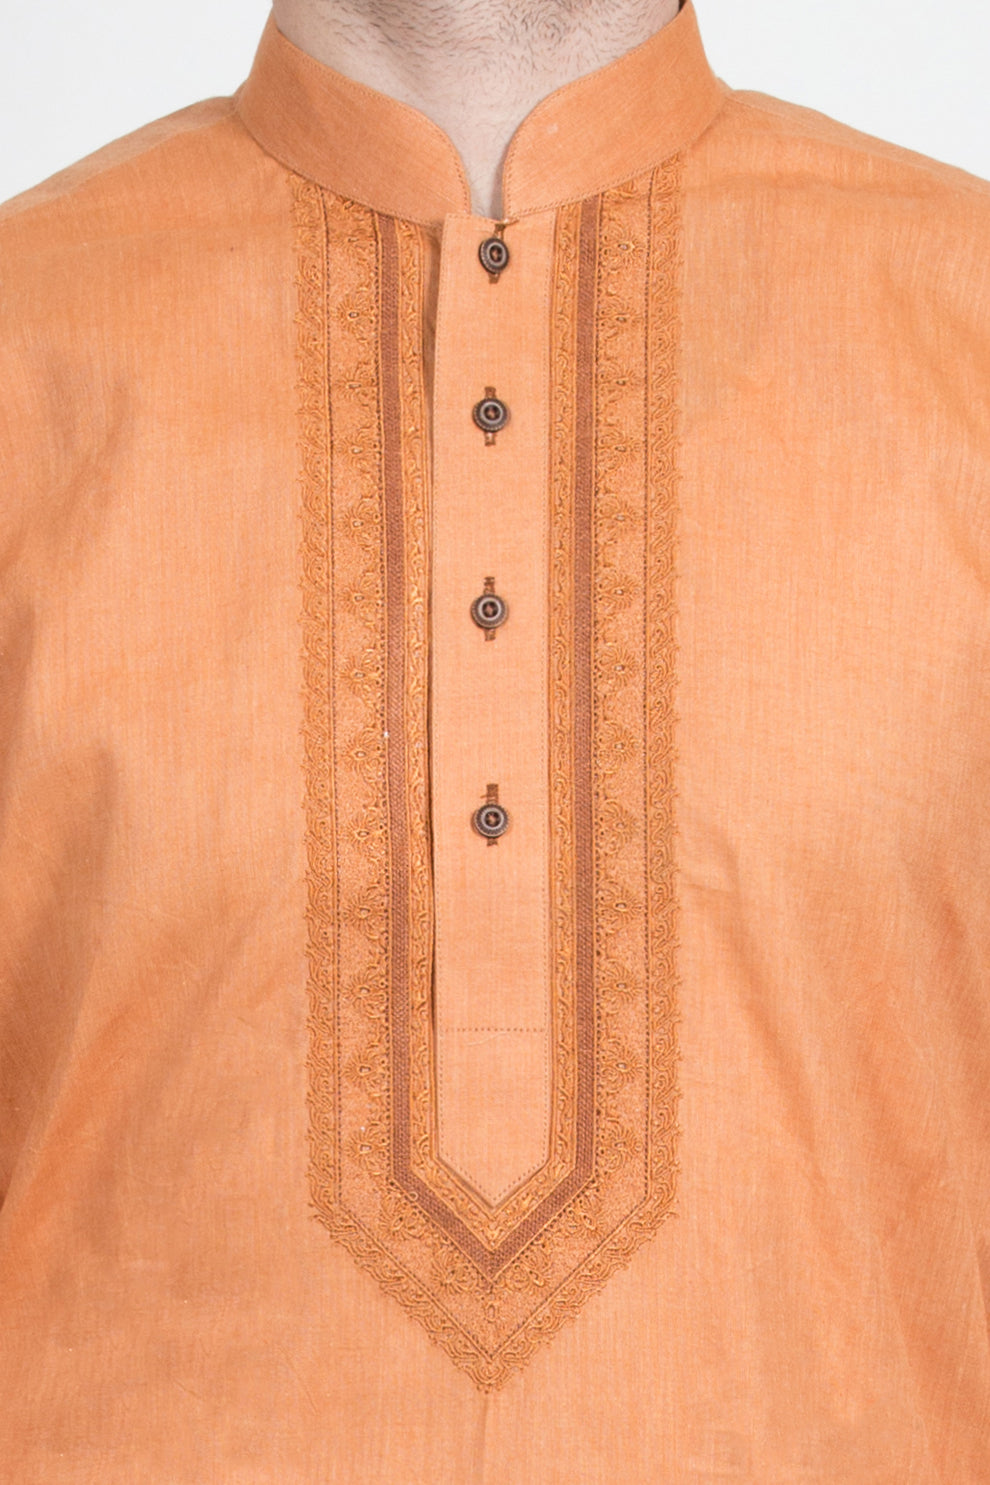 Embroidered Kurta - Komal's